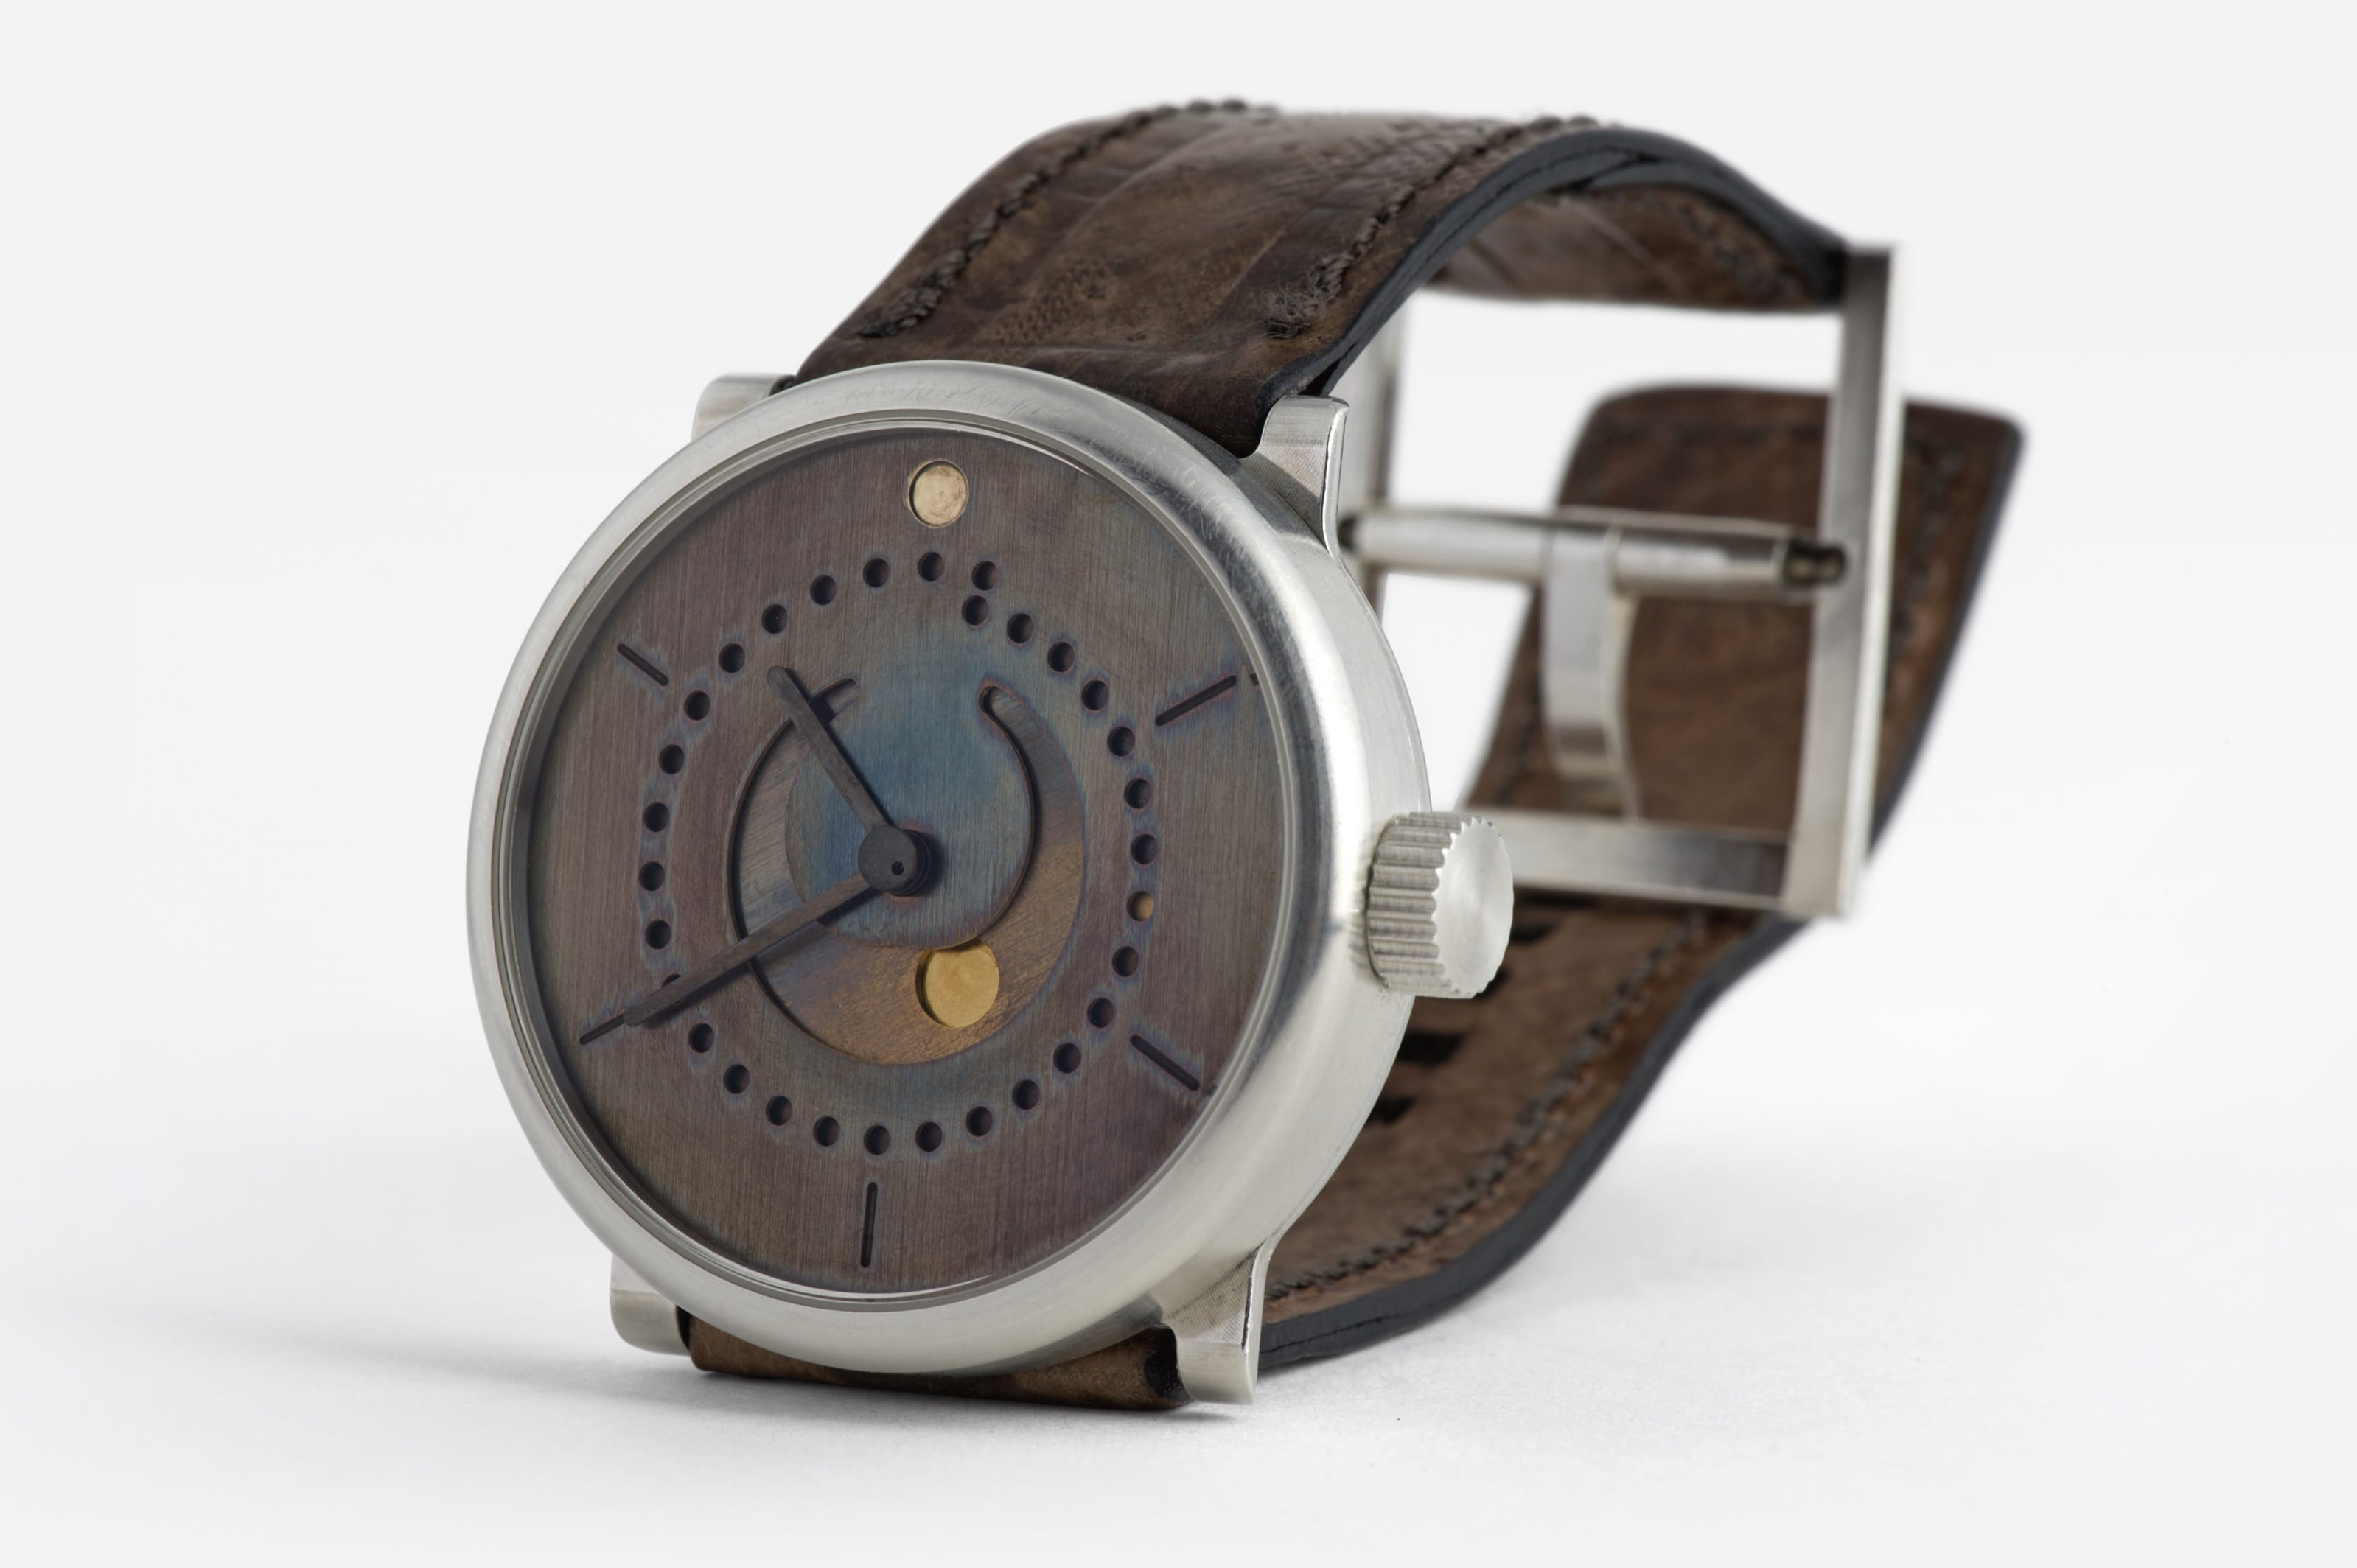 moon phase watch (39mm sterling silver 925 case with art patina dial by ochs und junior, crown side)